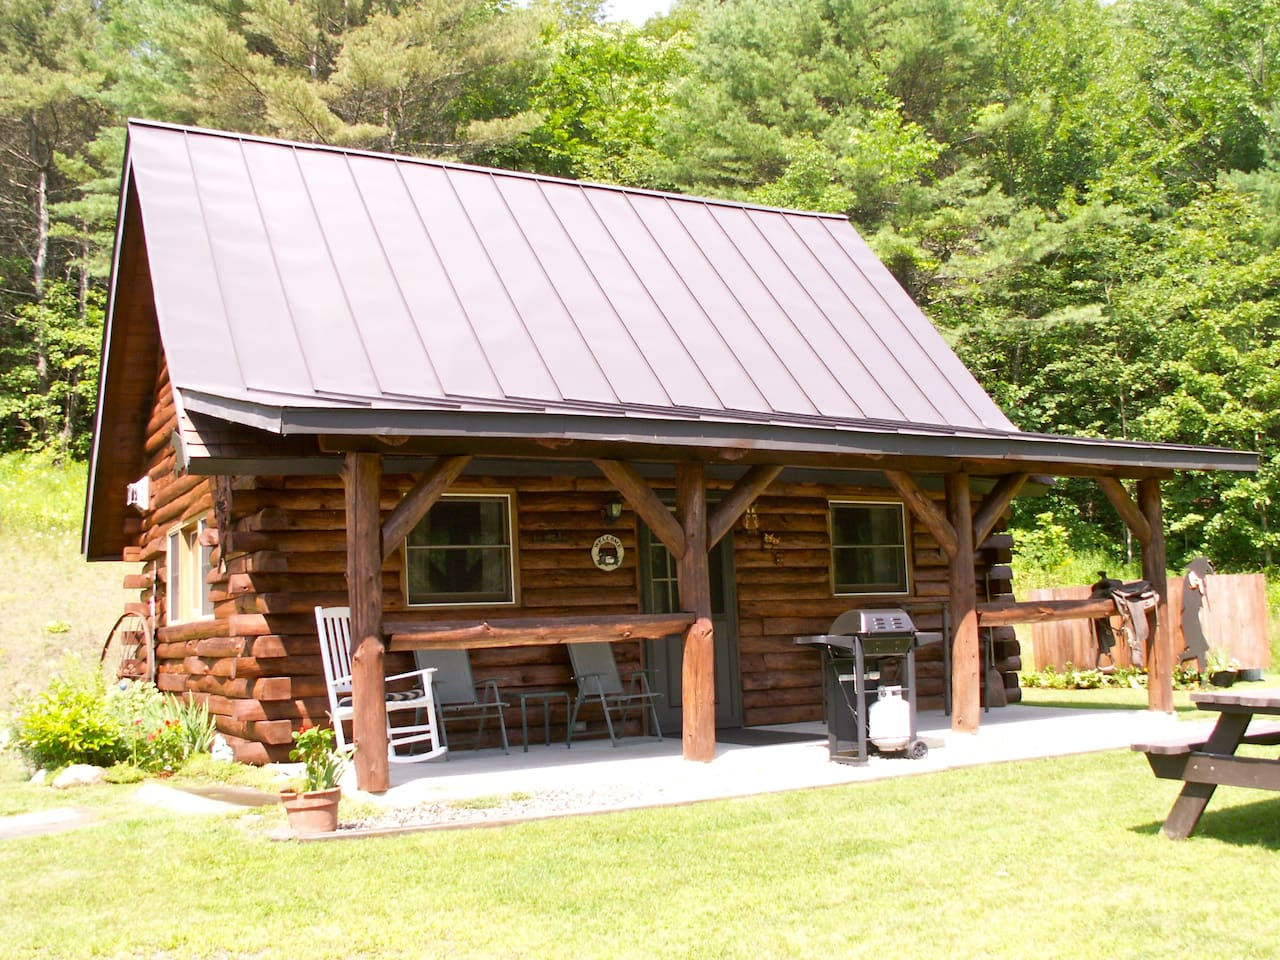 new six winter extremely in for cabins property magazine airbnb england boston rent this quaint vermont to